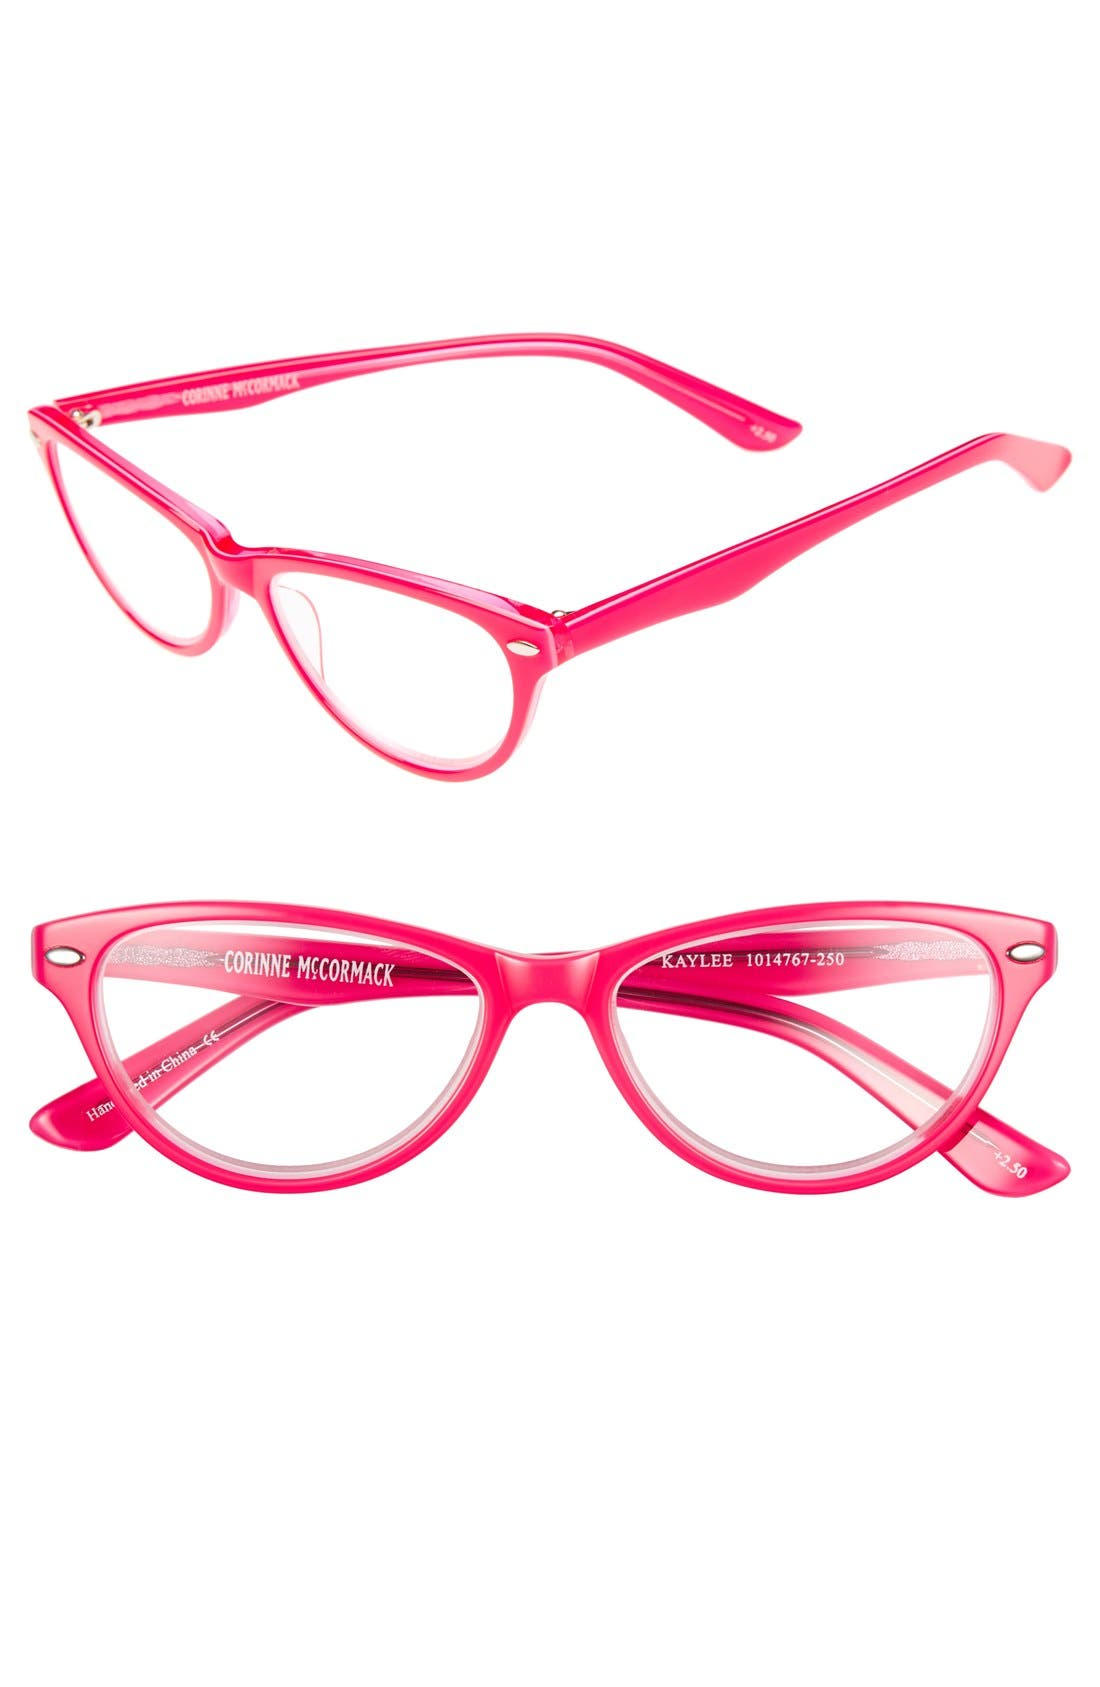 'Kaylee' Reading Glasses,                         Main,                         color, 650